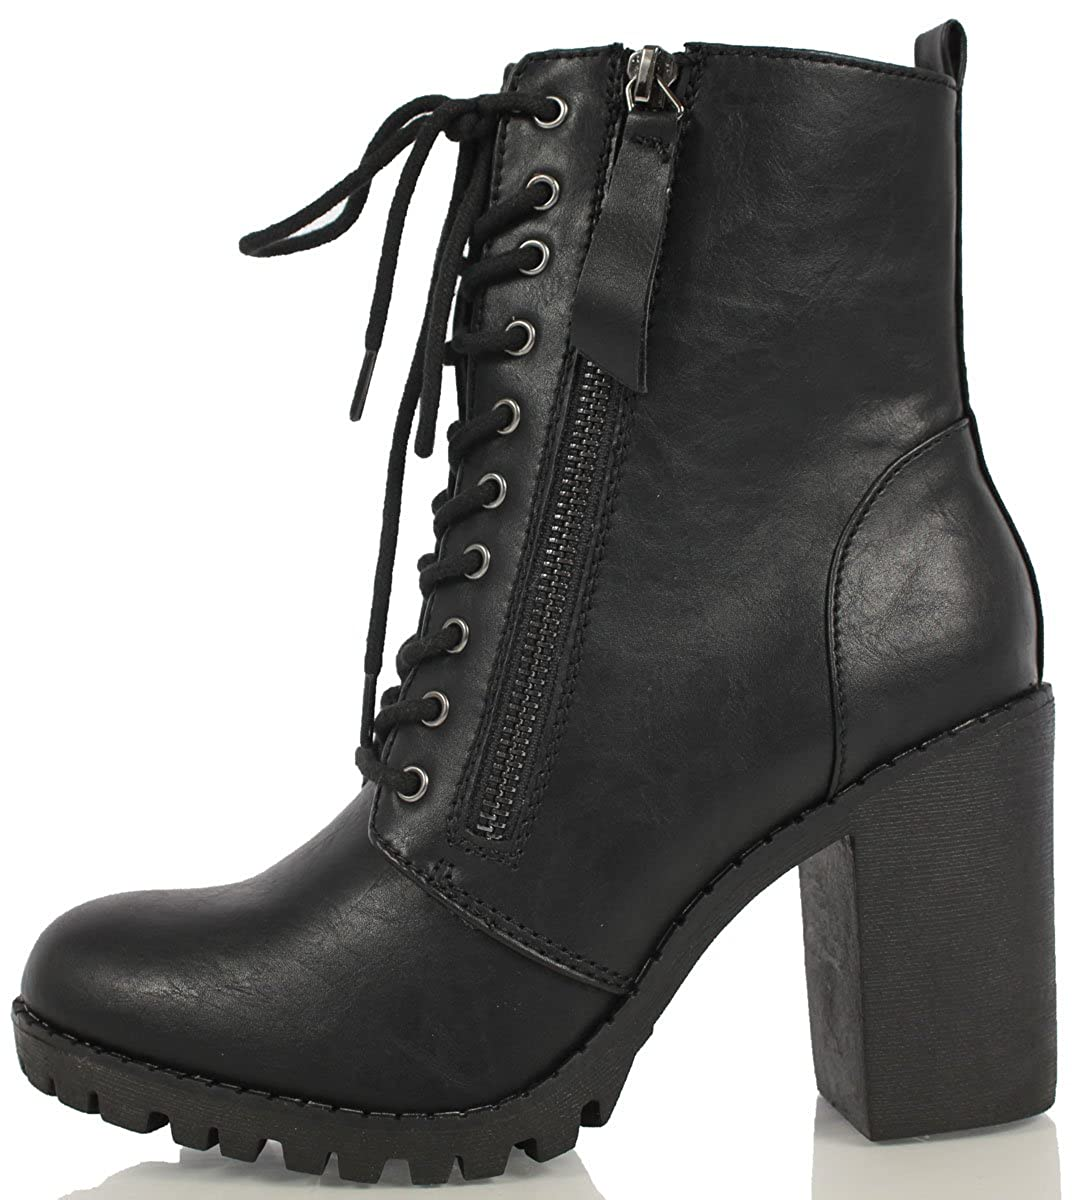 9f720e57618 Soda Women's Malia Combat Boot